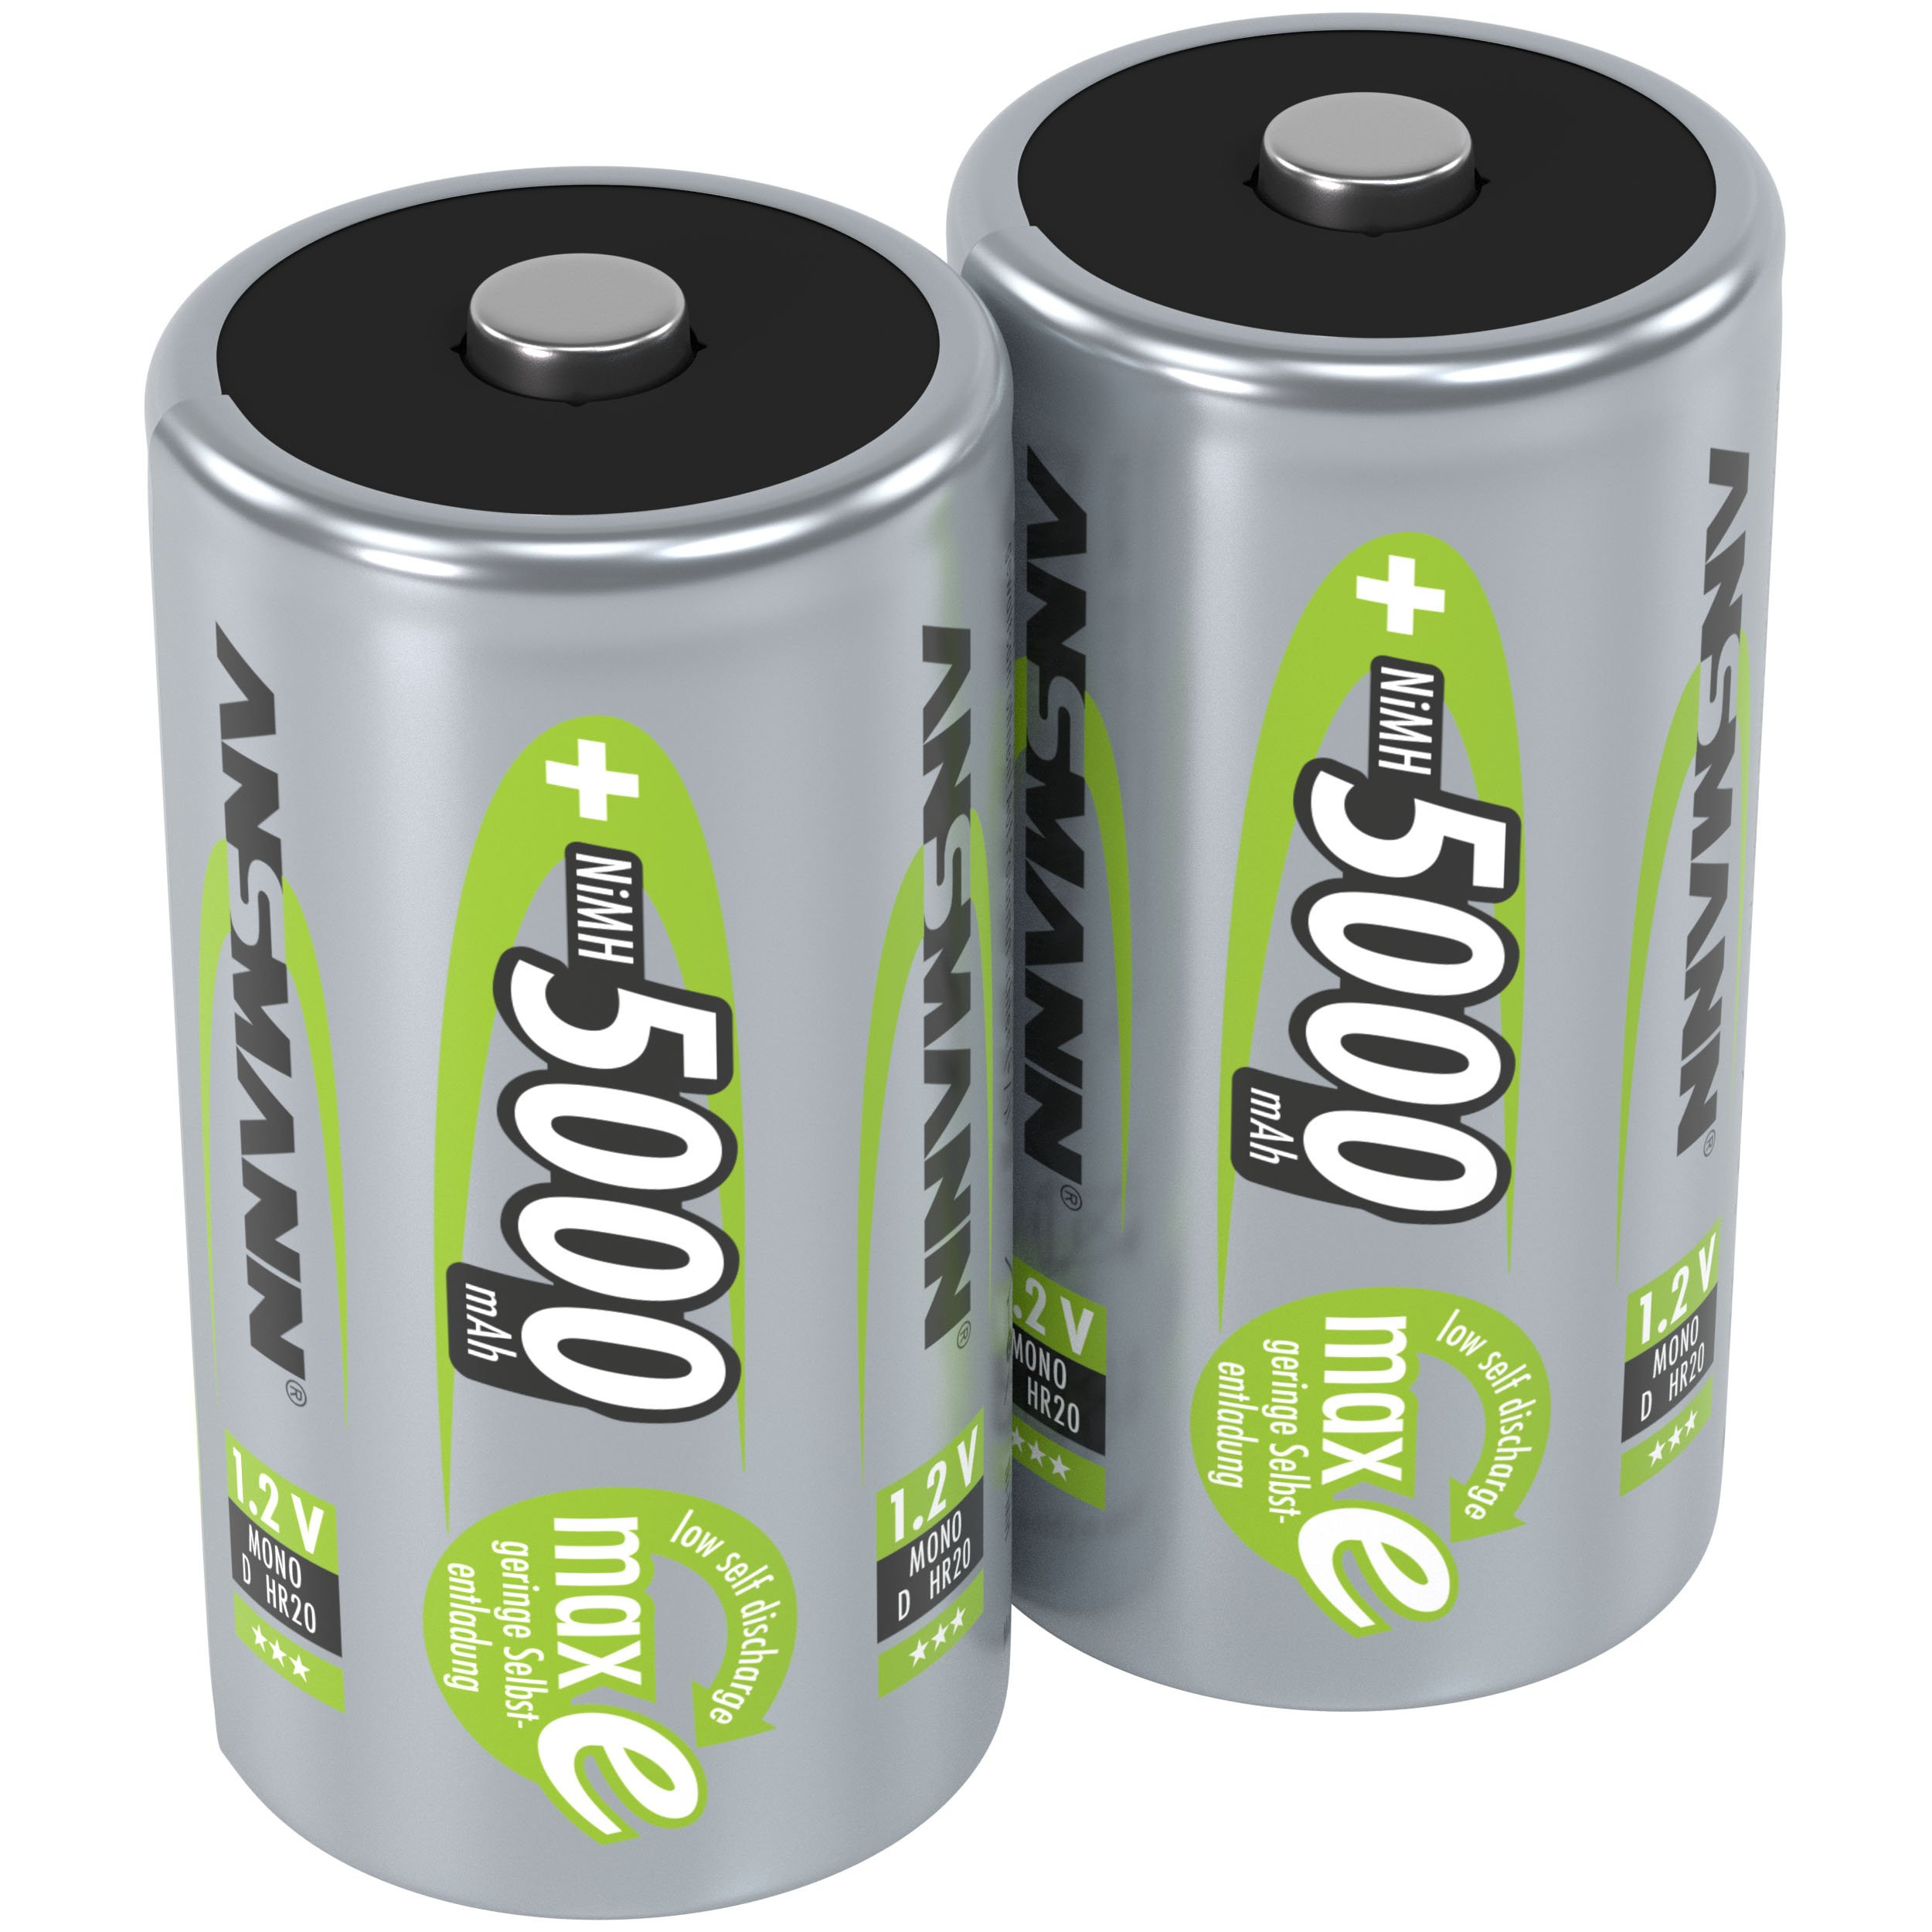 ANSMANN Rechargeable D Batteries 5000mAh maxE ready2use NiMH Professional D Battery pre-charged Power Accu for flashlight (2-Pack) by Ansmann